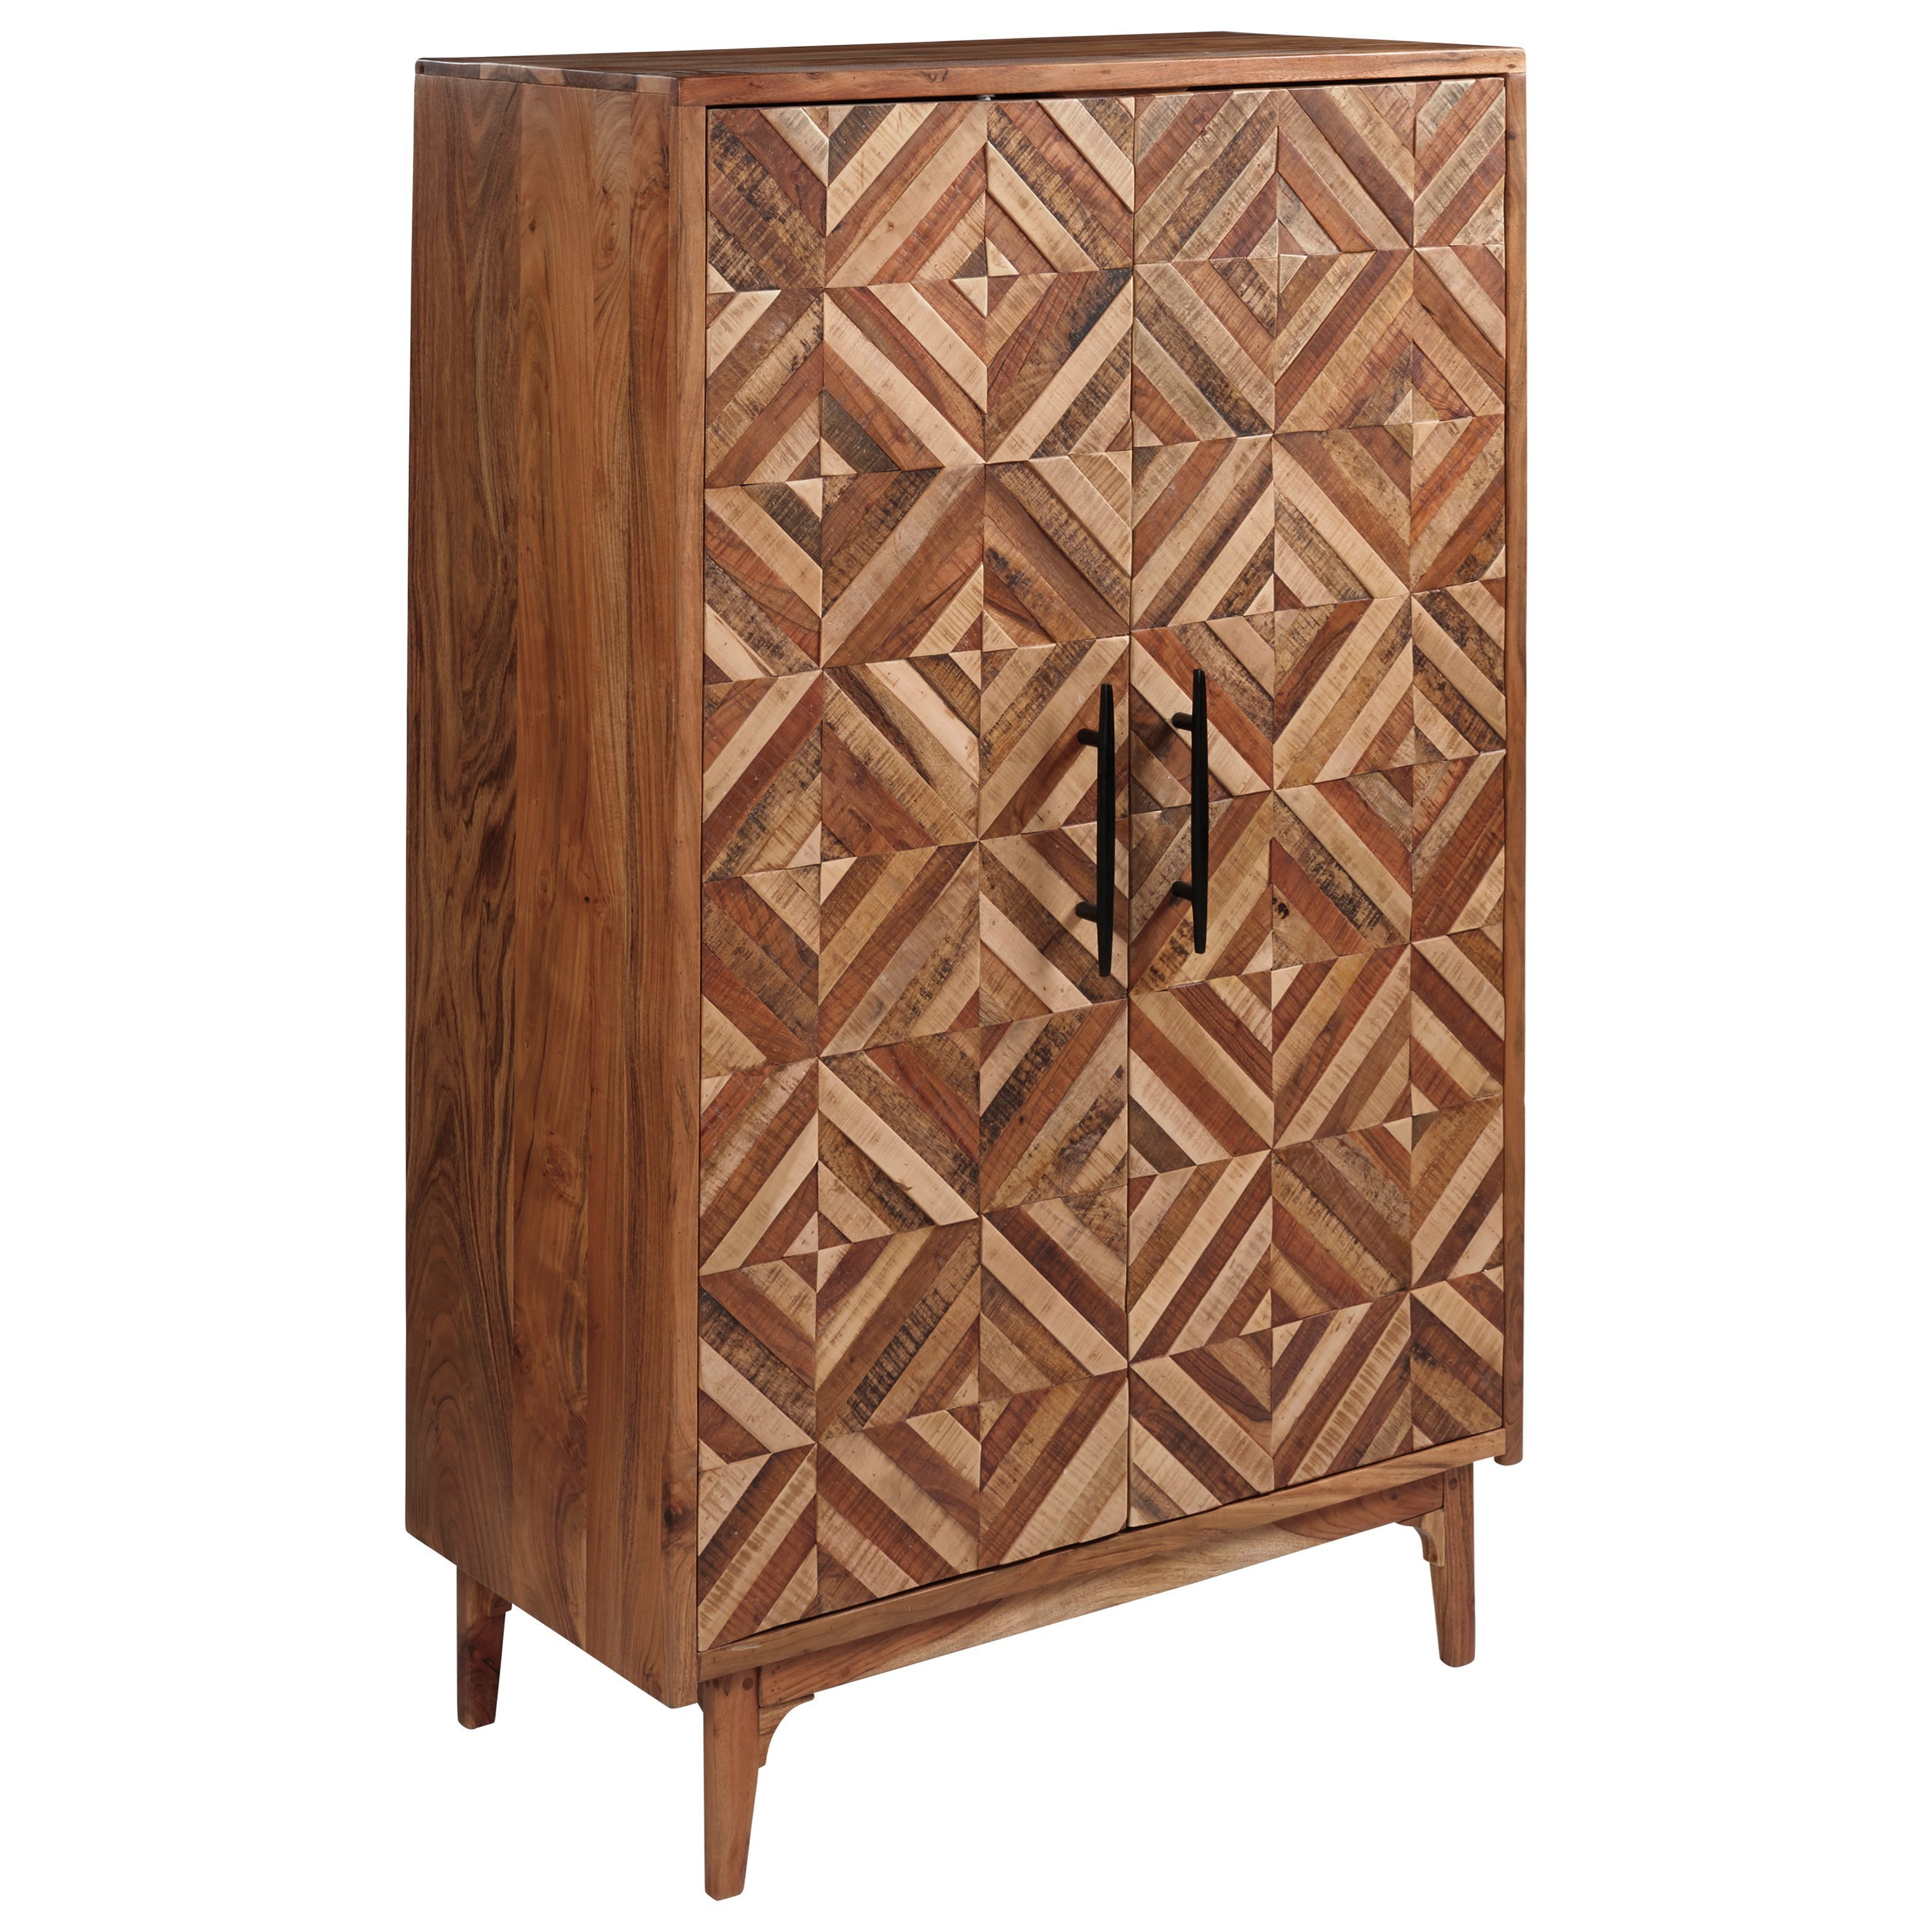 Mid-Century Modern Accent Cabinet with Patterned Doors